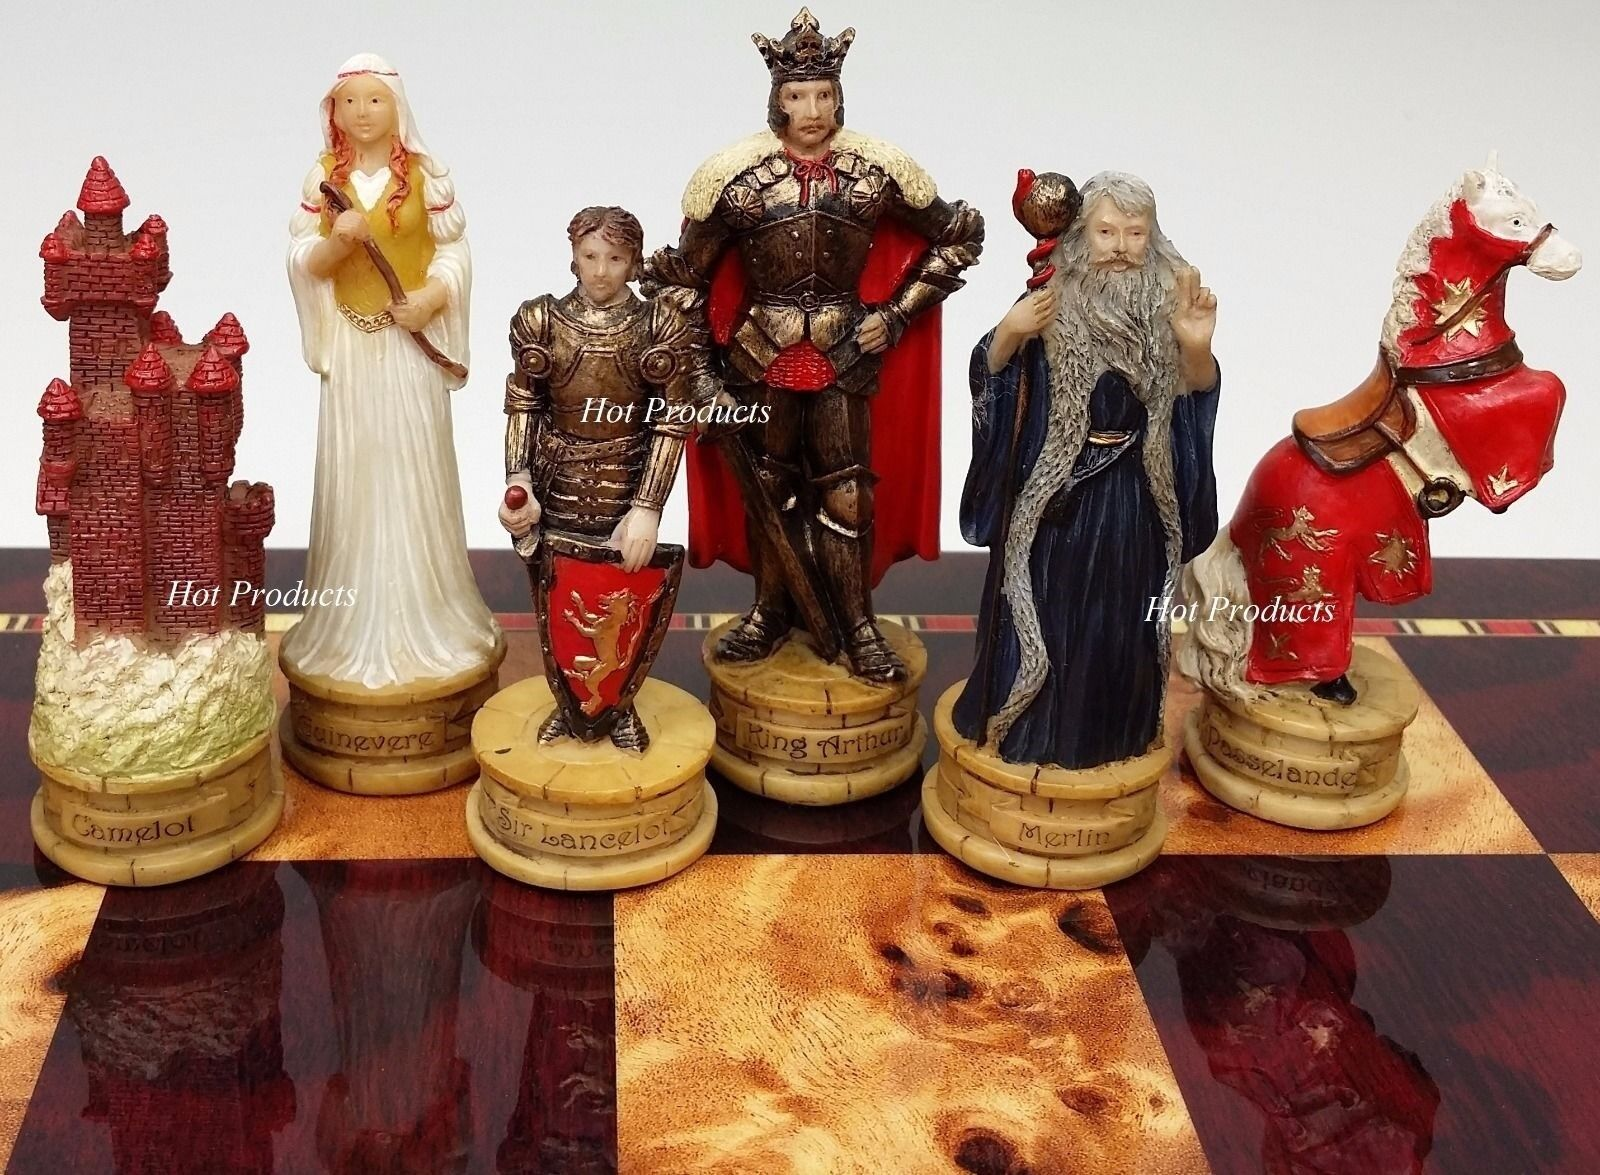 King Arthur / Sir Lancelot Camelot Medieval Times Knight Set Chess Uomo -NO BOARD